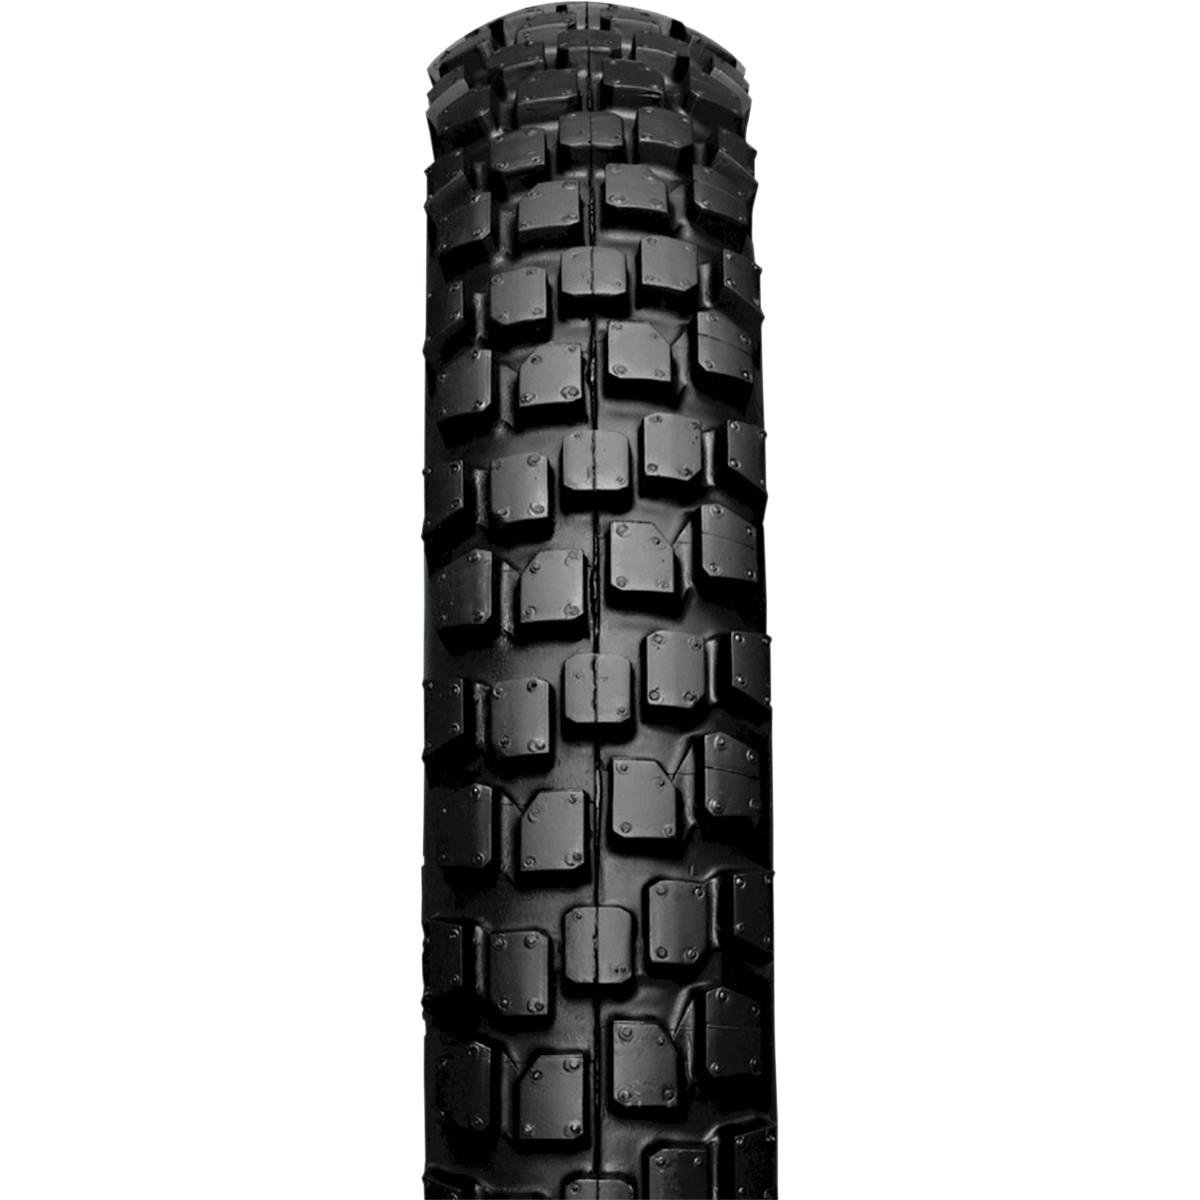 IRC GP2 Dual Sport Tire - Front - 3.00-21 , Position: Front, Rim Size: 21, Tire Application: All-Terrain, Tire Size: 3.00-21, Tire Type: Dual Sport, Load Rating: 51, Speed Rating: P T10331 4333046068